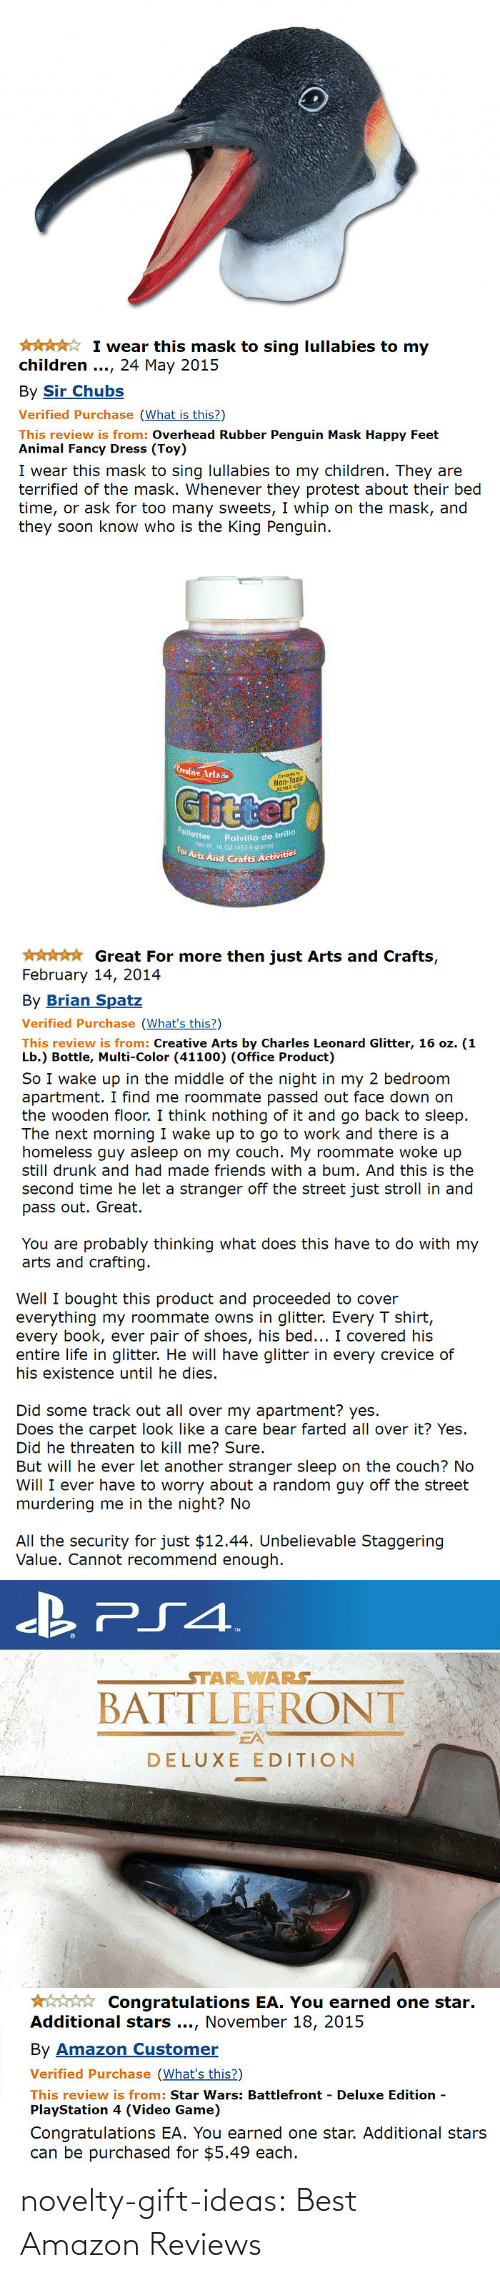 Best: novelty-gift-ideas: Best Amazon Reviews